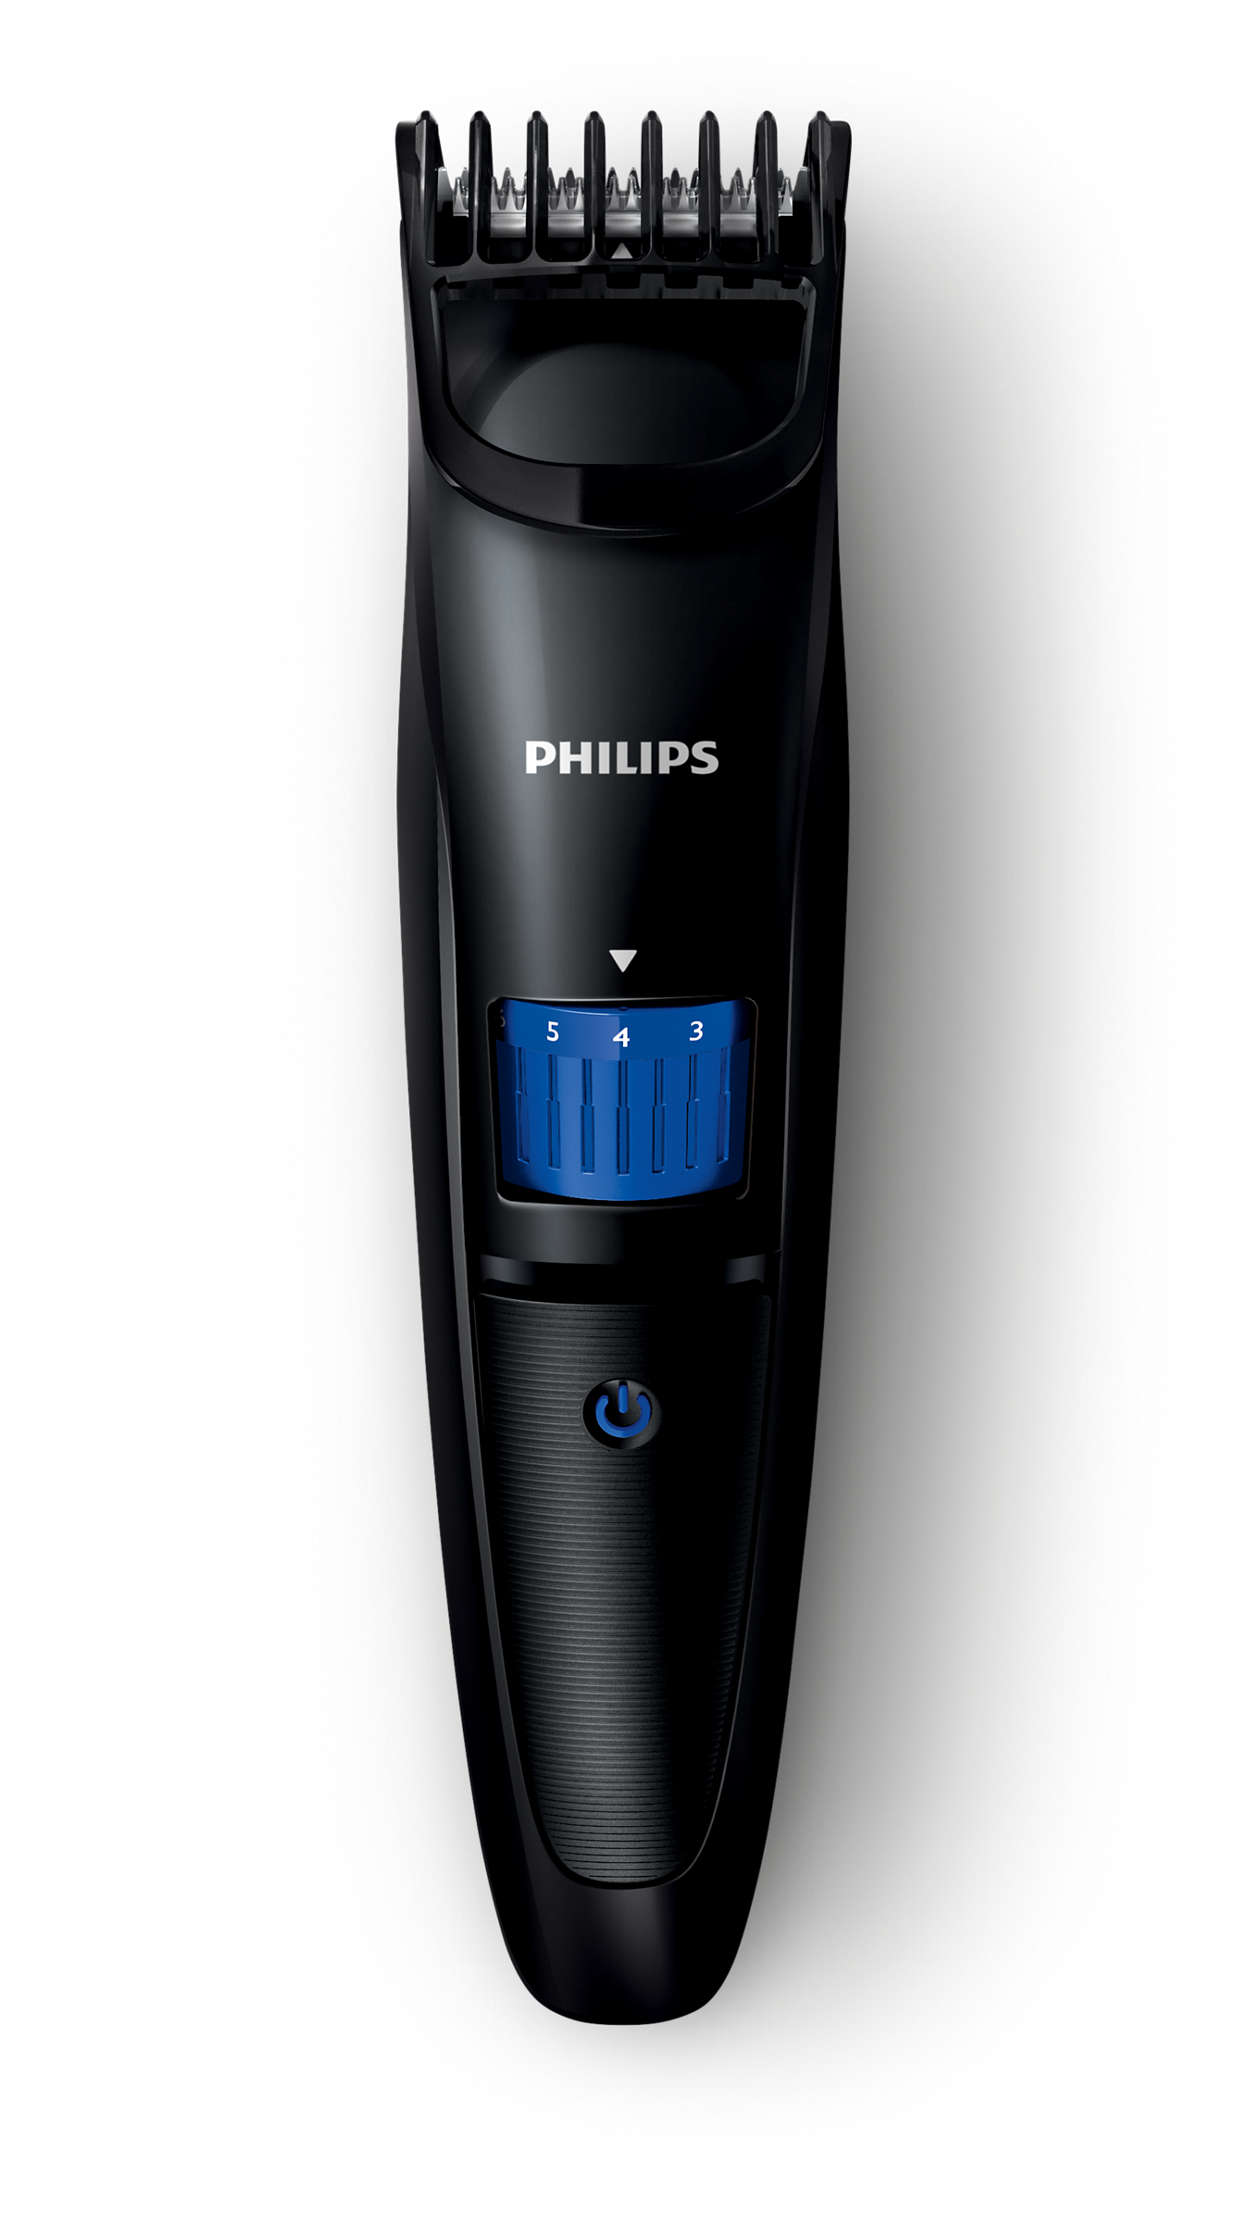 beardtrimmer series 3000 tondeuse barbe qt4000 15 philips. Black Bedroom Furniture Sets. Home Design Ideas